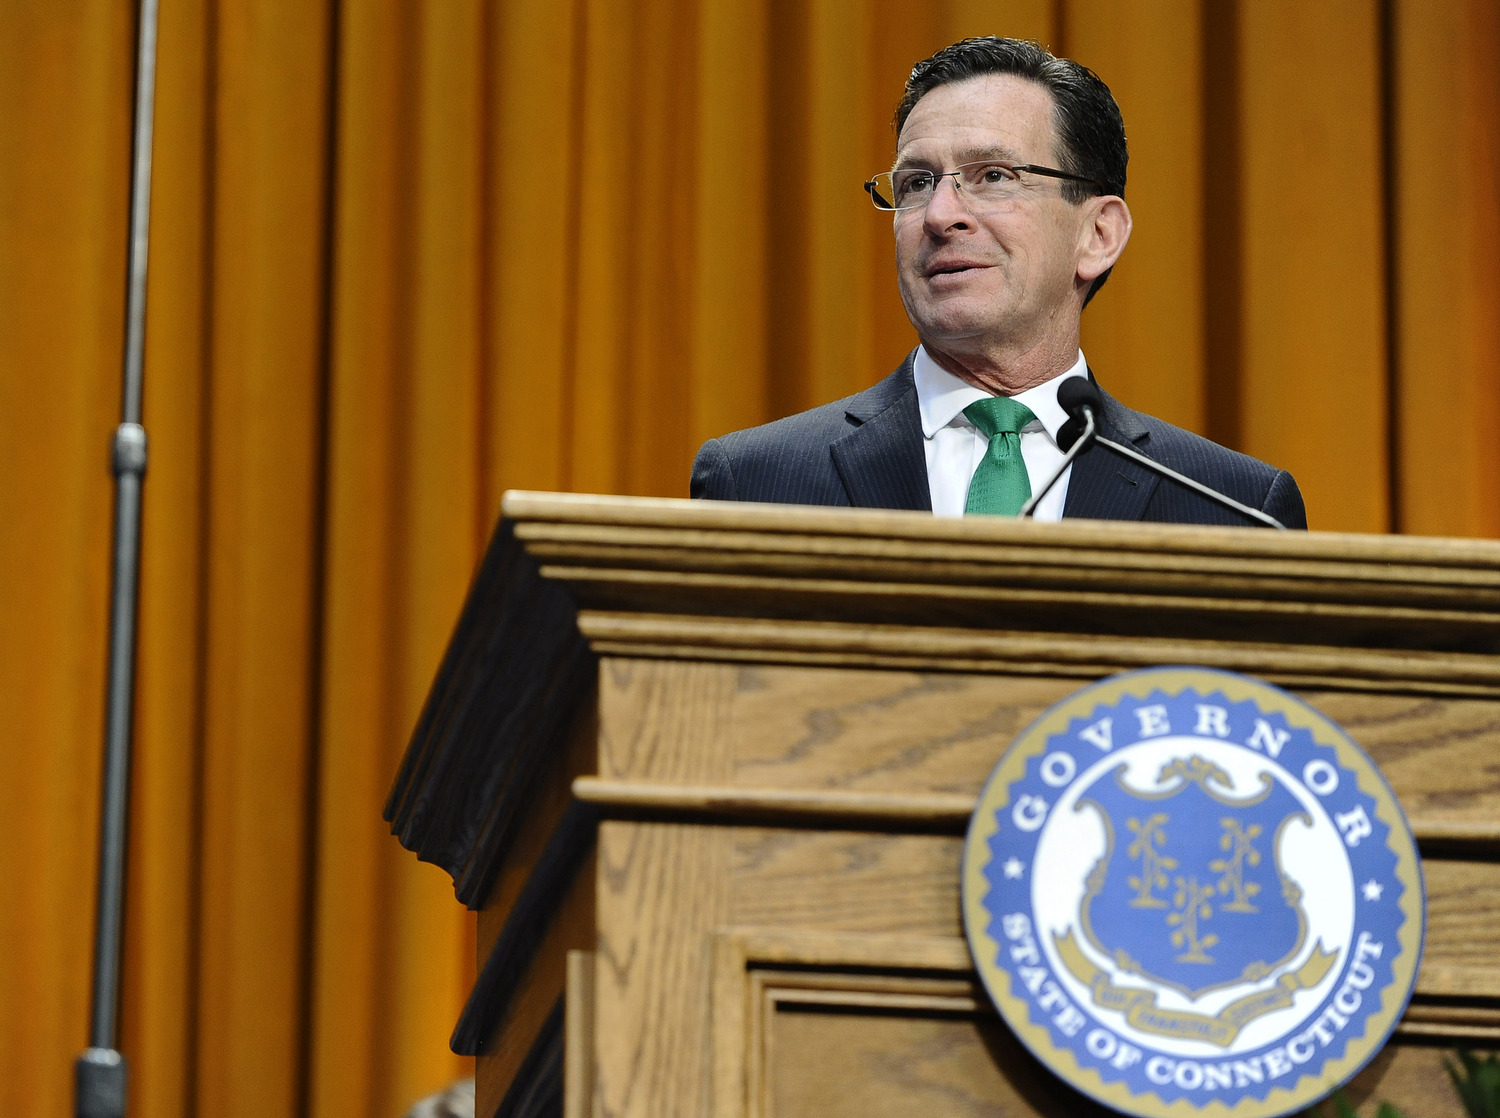 Connecticut Gov. Dannel P. Malloy speaks after being sworn in for his second term, Wednesday, Jan. 7, 2015, inside the William A. O'Neill Armory in Hartford Conn. (Jessica Hill, Pool/AP)